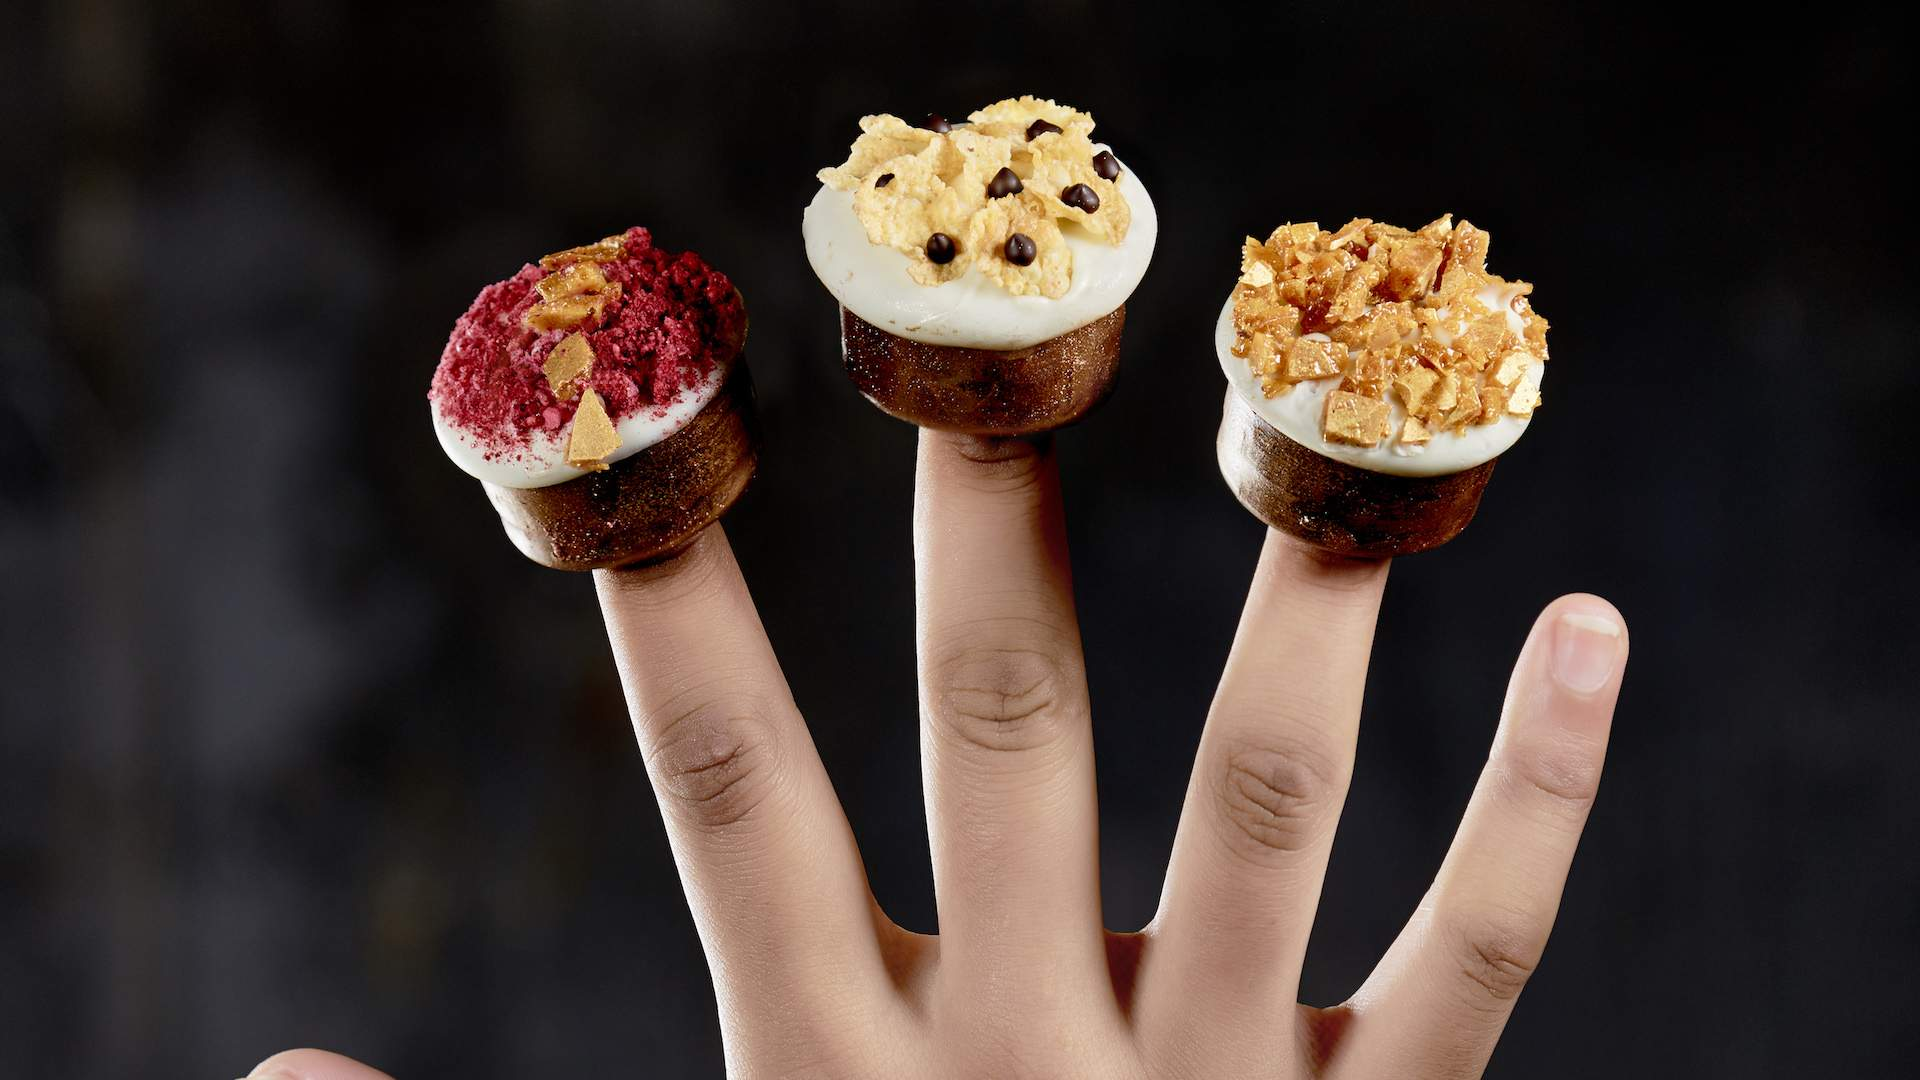 Giapo's Newest Frankencreation Is Wearable Ice Cream